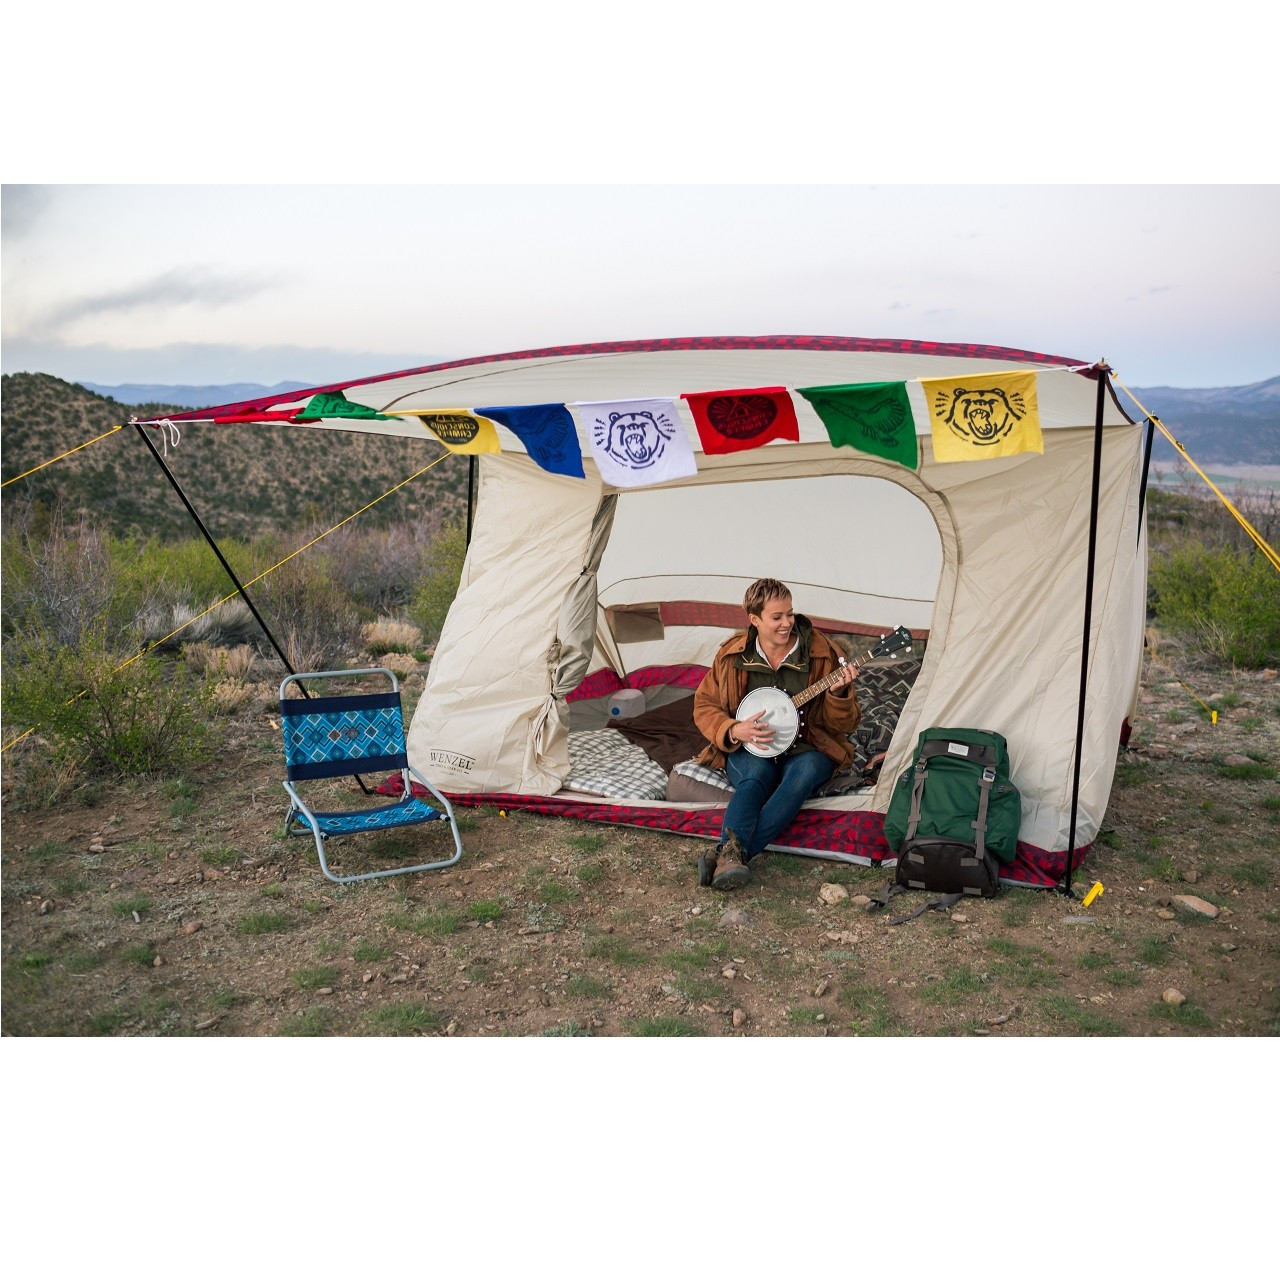 Woman sitting with her legs outside of a completely set up Wenzel Ballyhoo 4 Tent with guy lines extended playing a Banjo with a Wenzel chair and backpack outside the tent